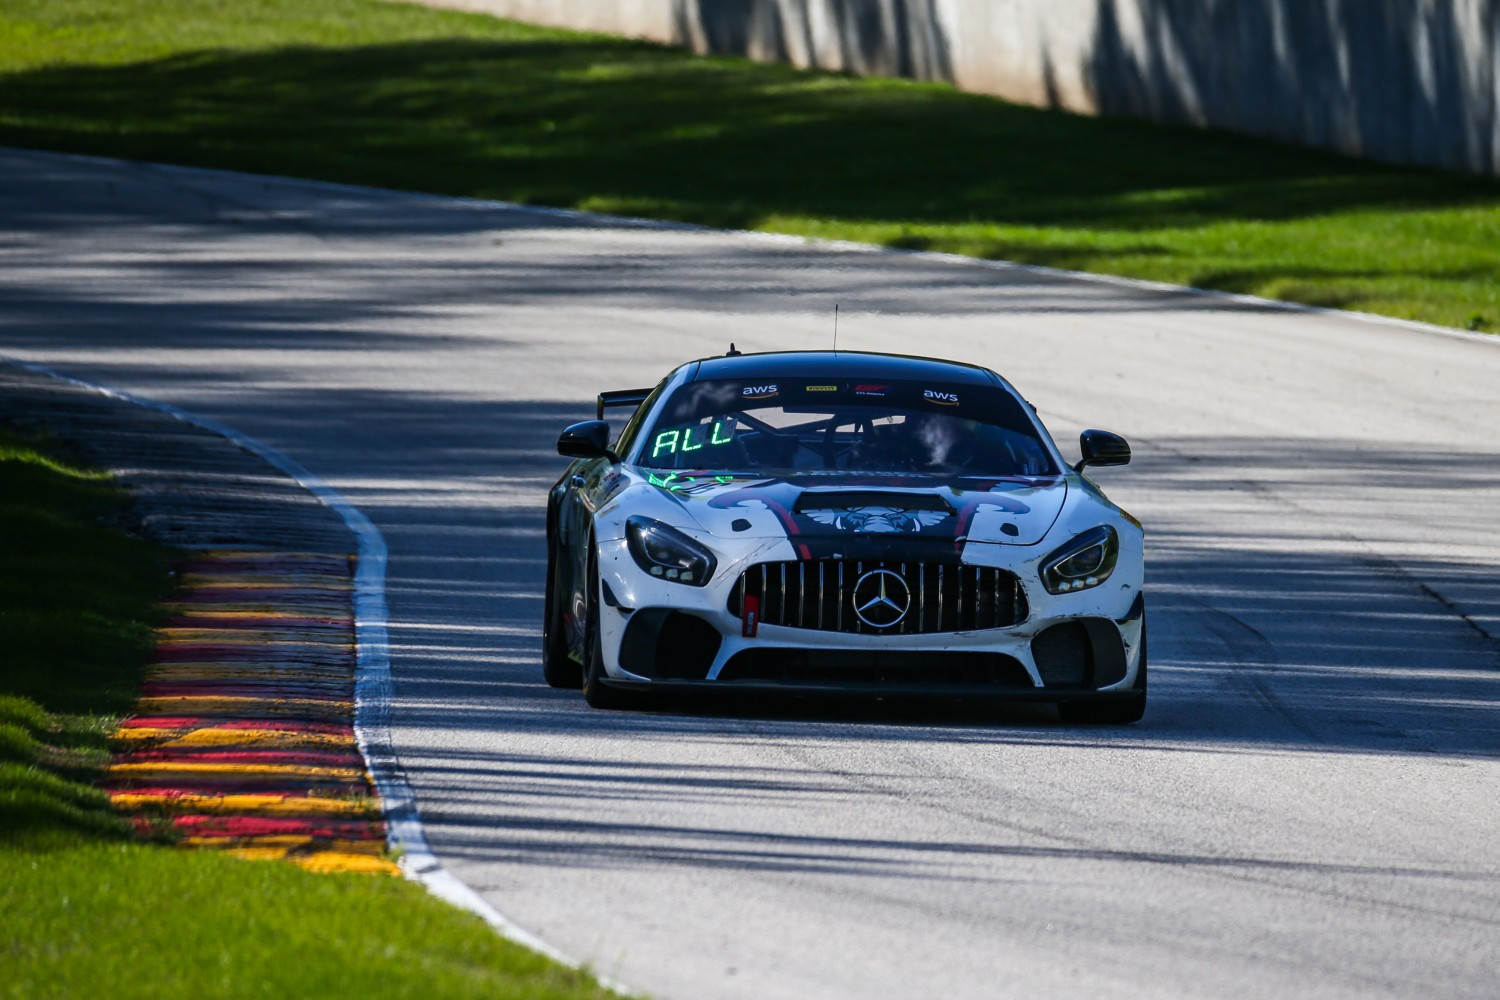 #16 Mercedes-AMG GT4 of John Allen and Kris Wilson, Rearden Racing, GT4 SprintX Am, SRO America, Road America, Elkhart Lake, WI, August 2020.  | Sarah Weeks/SRO